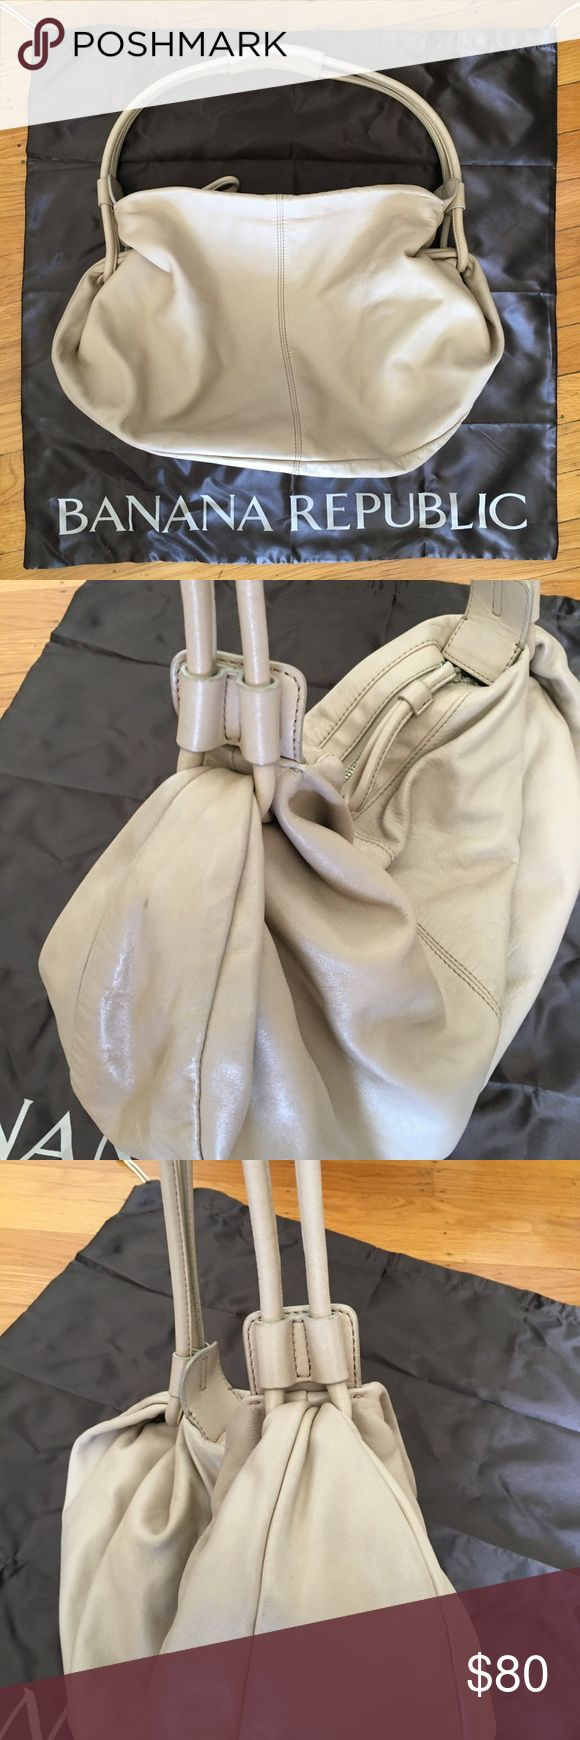 """BR leather purse Light nude blush leather crescent shaped slouchy purse.  Zip top and two interior pockets, one zips shut. Some normal wear under the handle and in the bottom as shown in the photos, not noticeable when wearing.  Otherwise excellent condition.  Dust bag included. 14"""" drop, 16"""" w 11"""" h and 4.5"""" d Banana Republic Bags Hobos"""